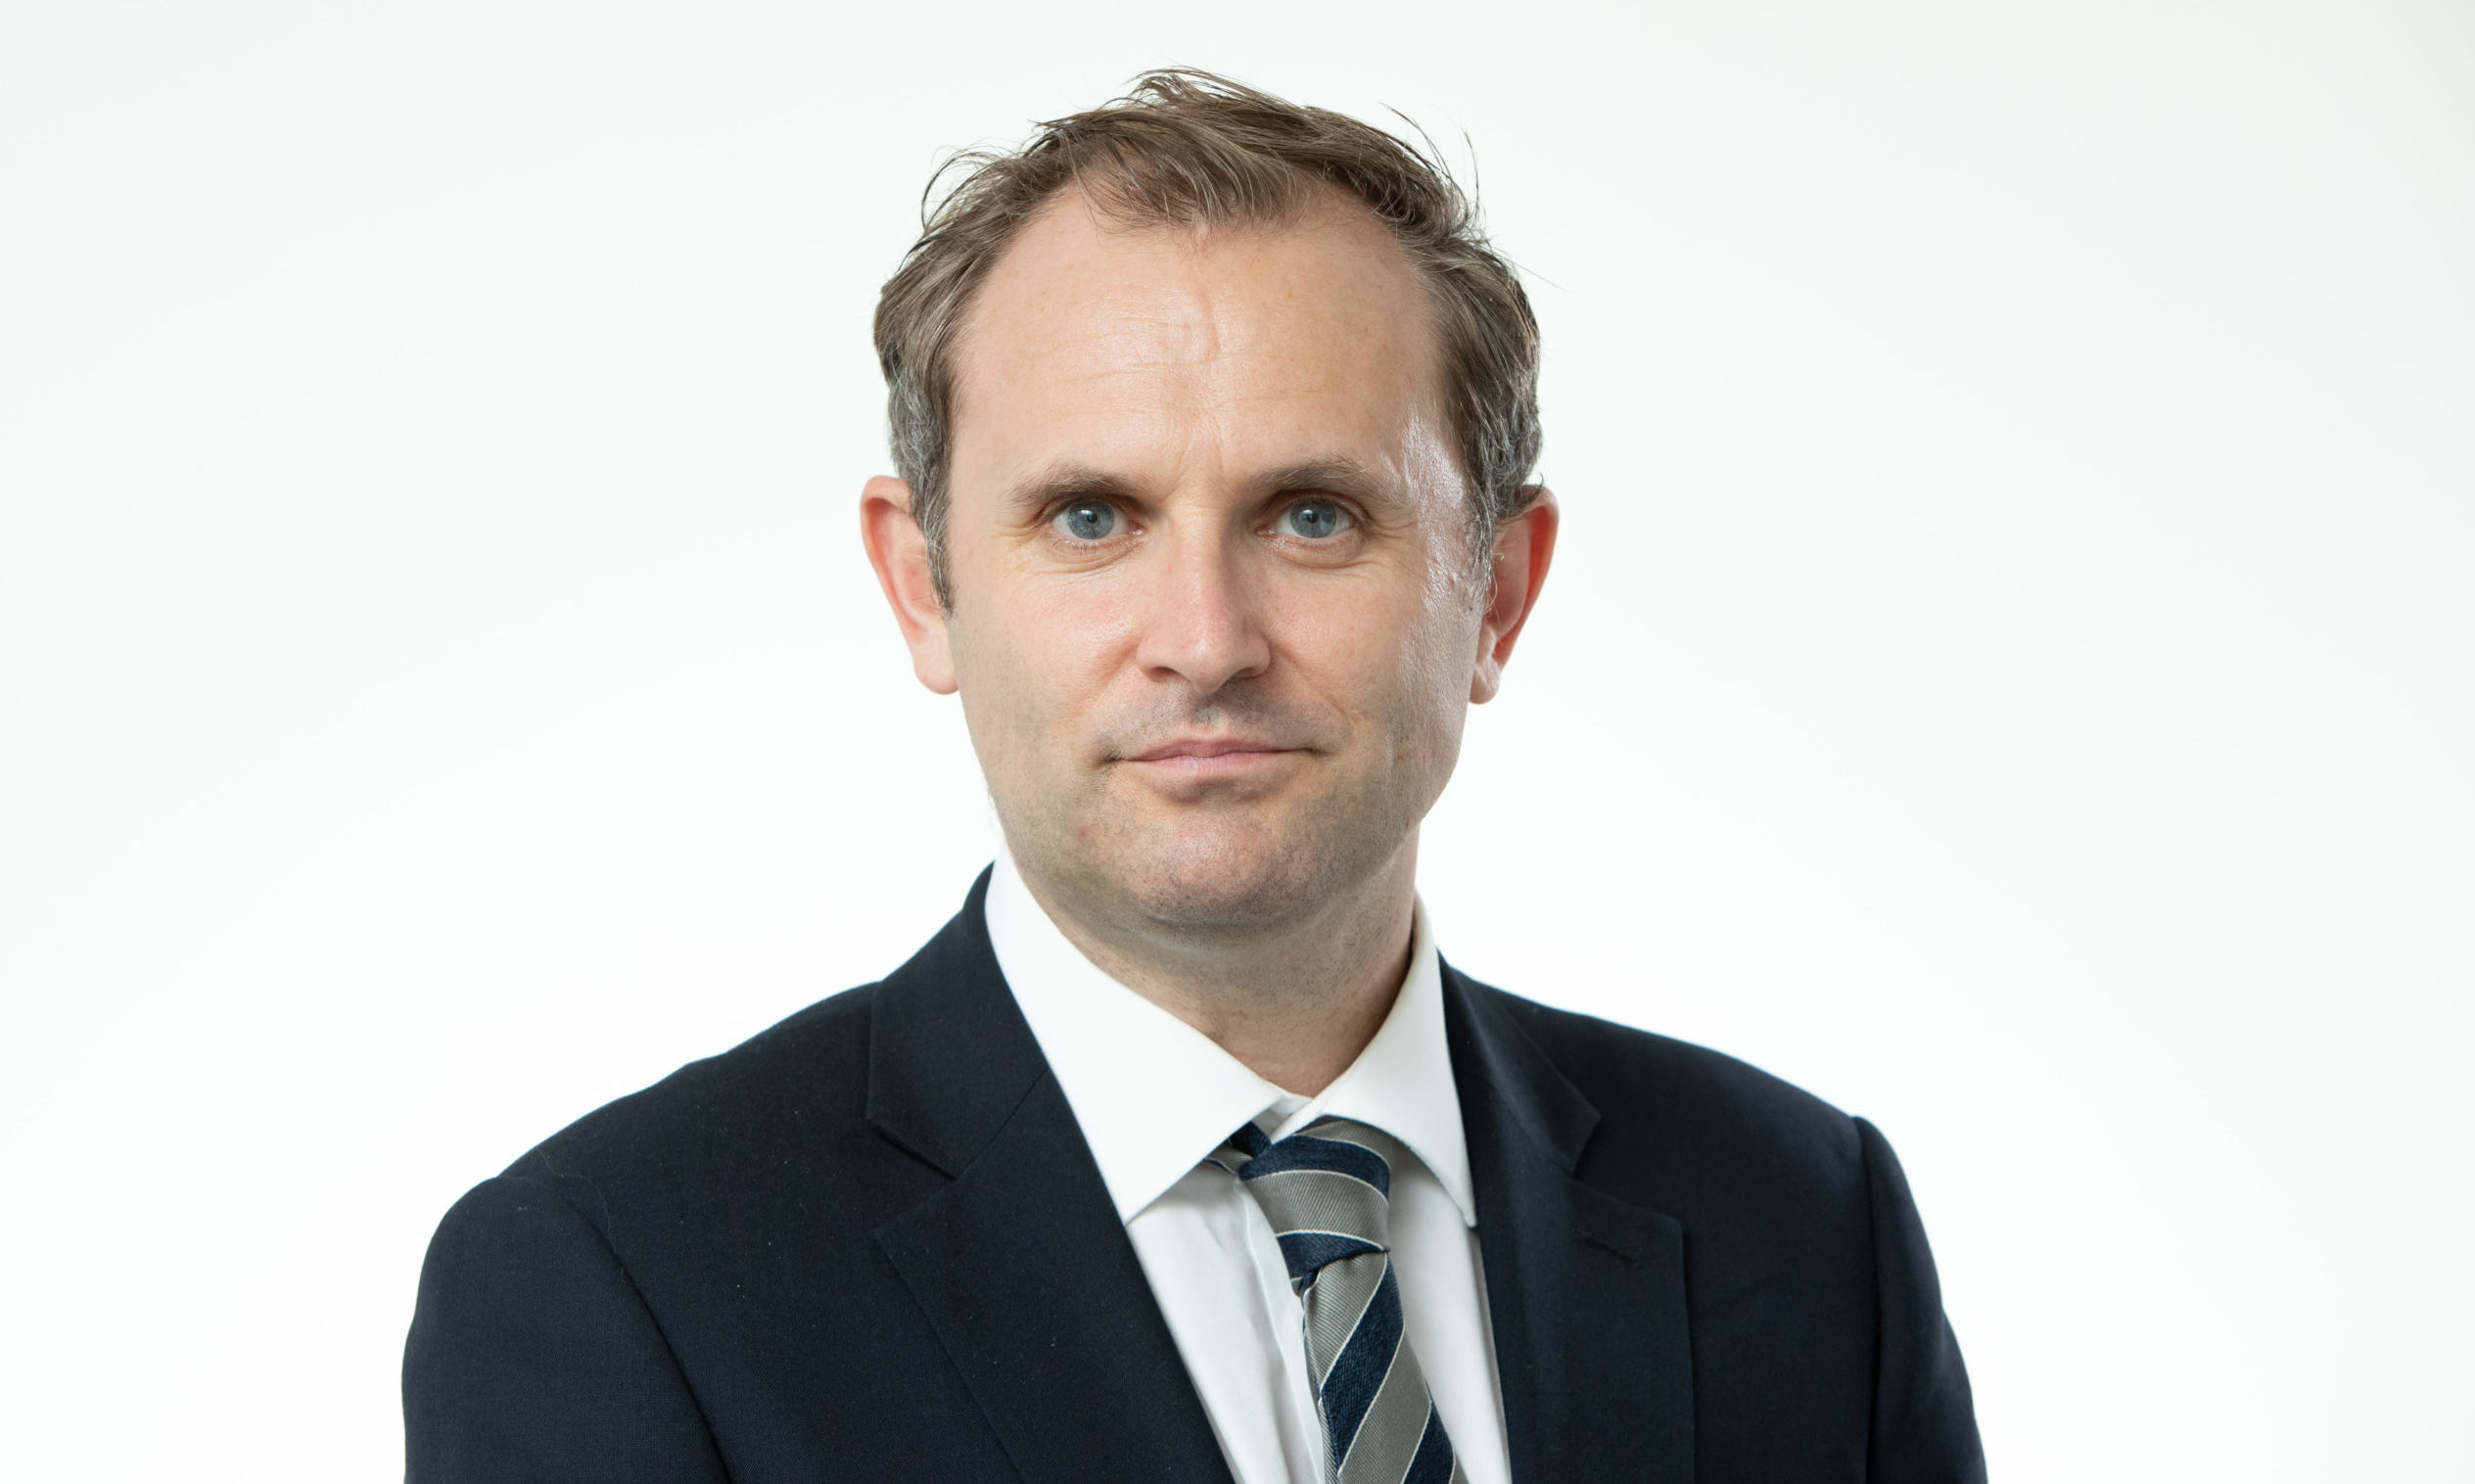 Sapphire Medical Clinics managing director Dr Mikael Sodergren